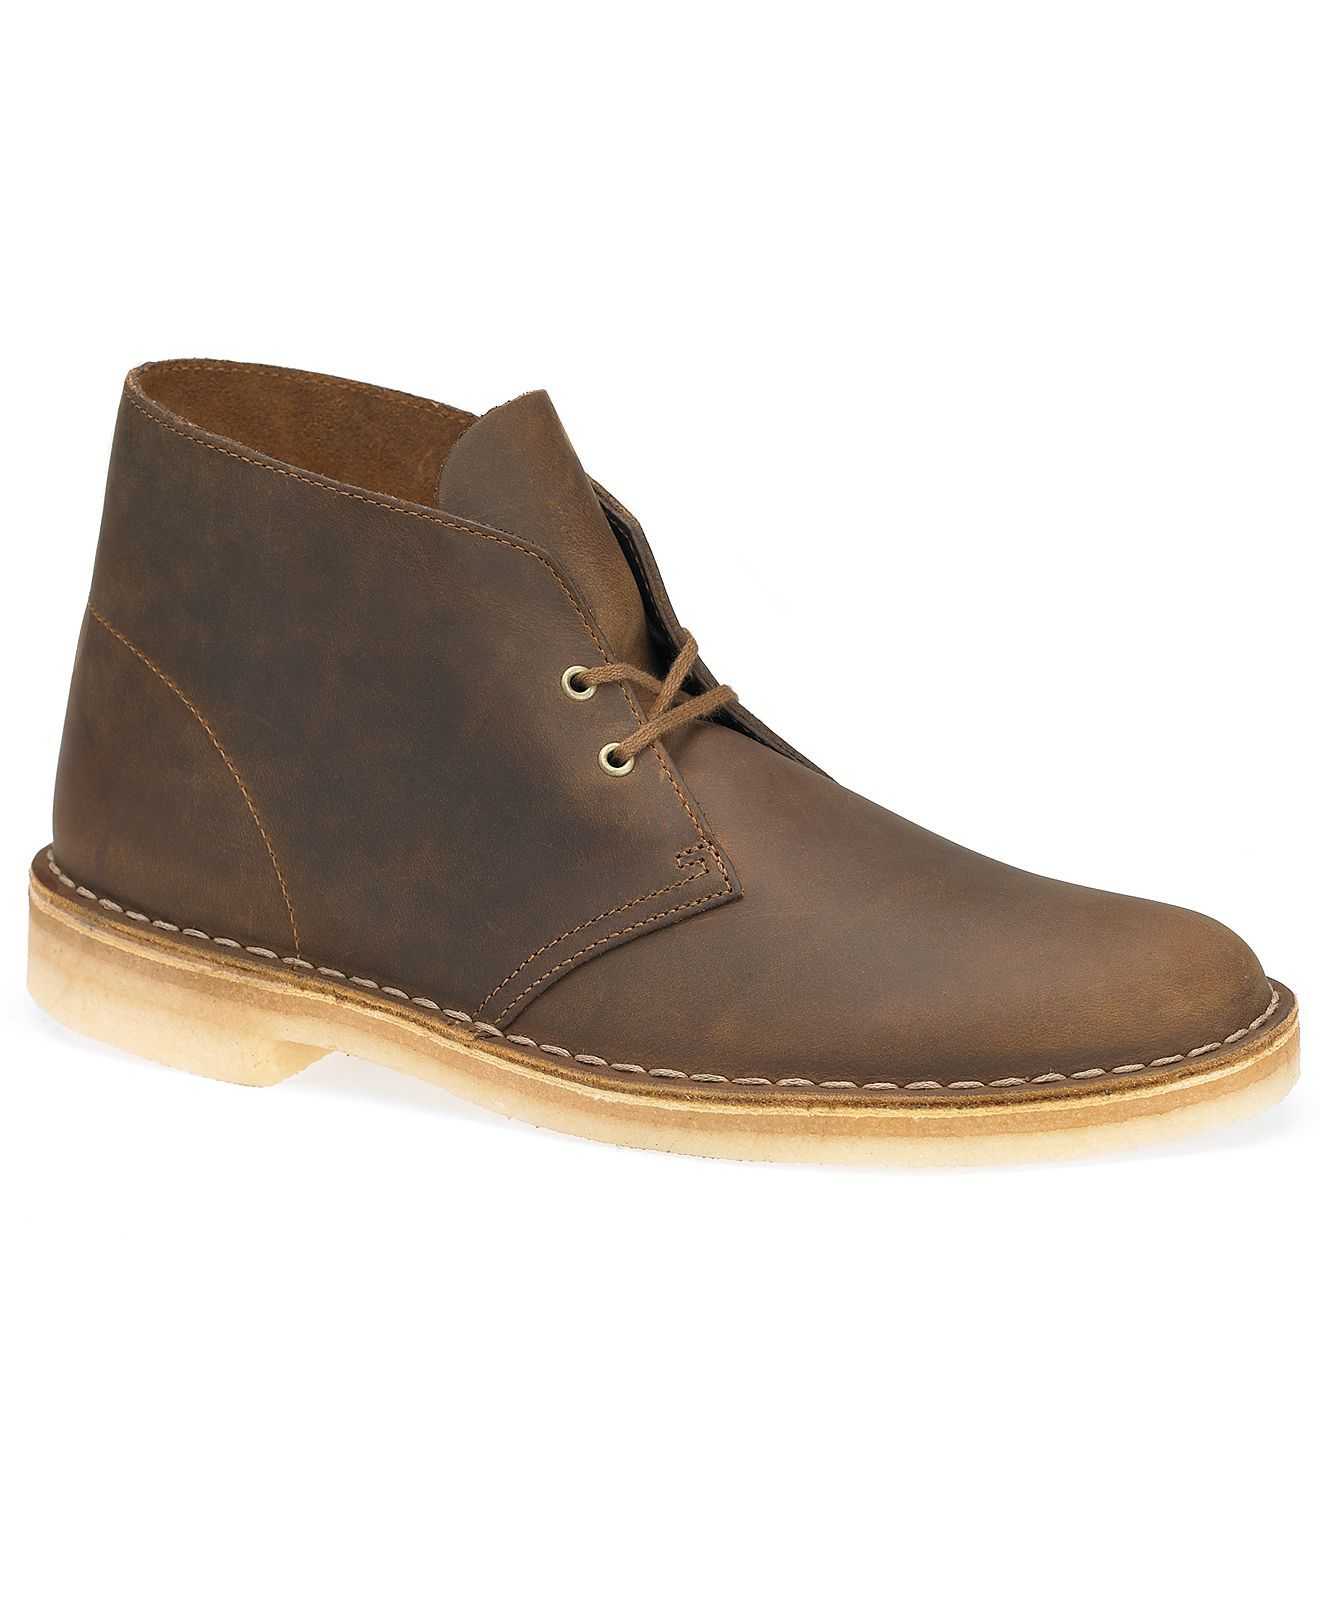 Clarks Shoes, Original Desert Boots Mens Boots Macy's